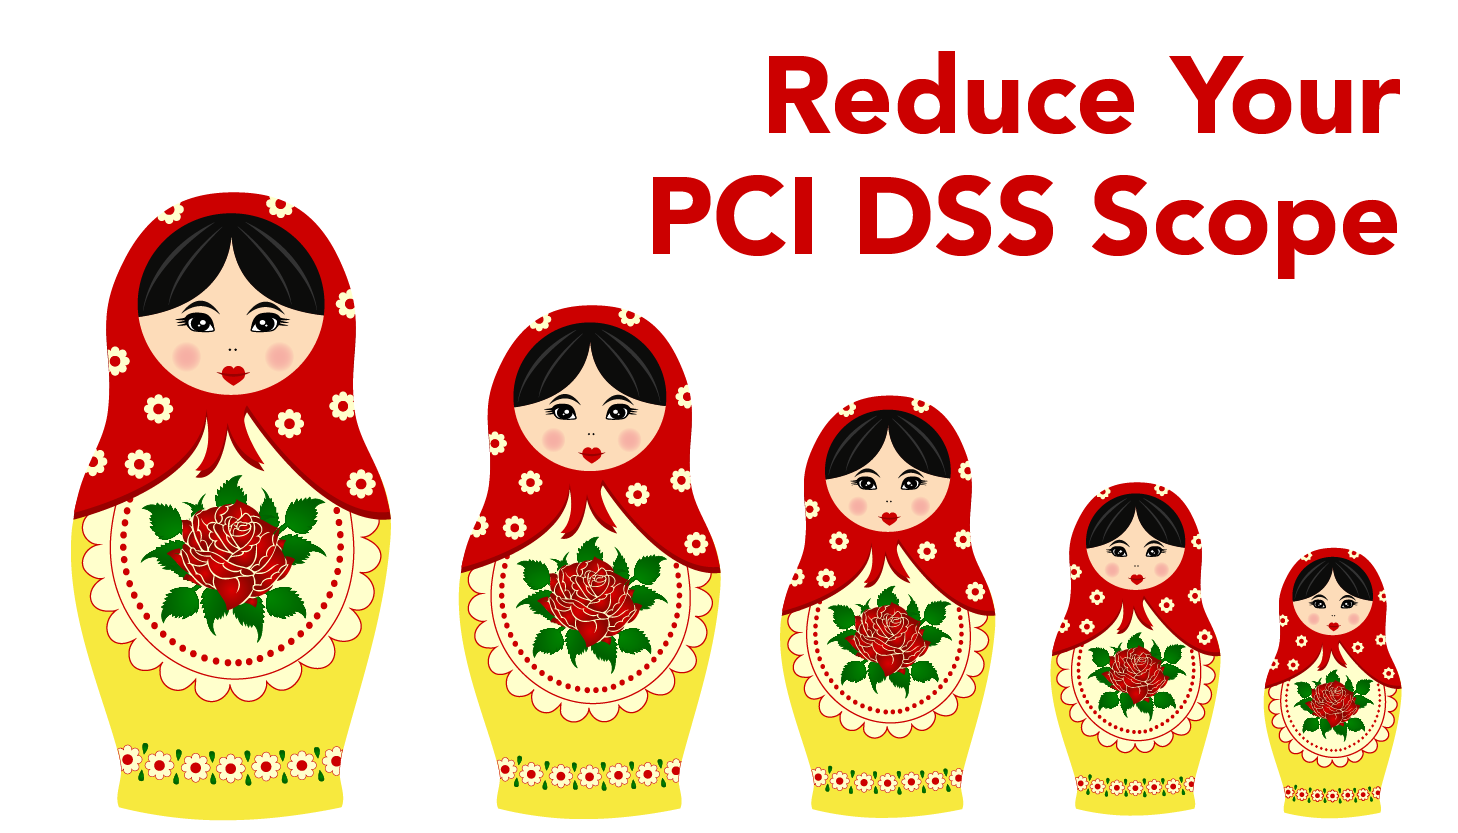 Reduce your PCI Scope